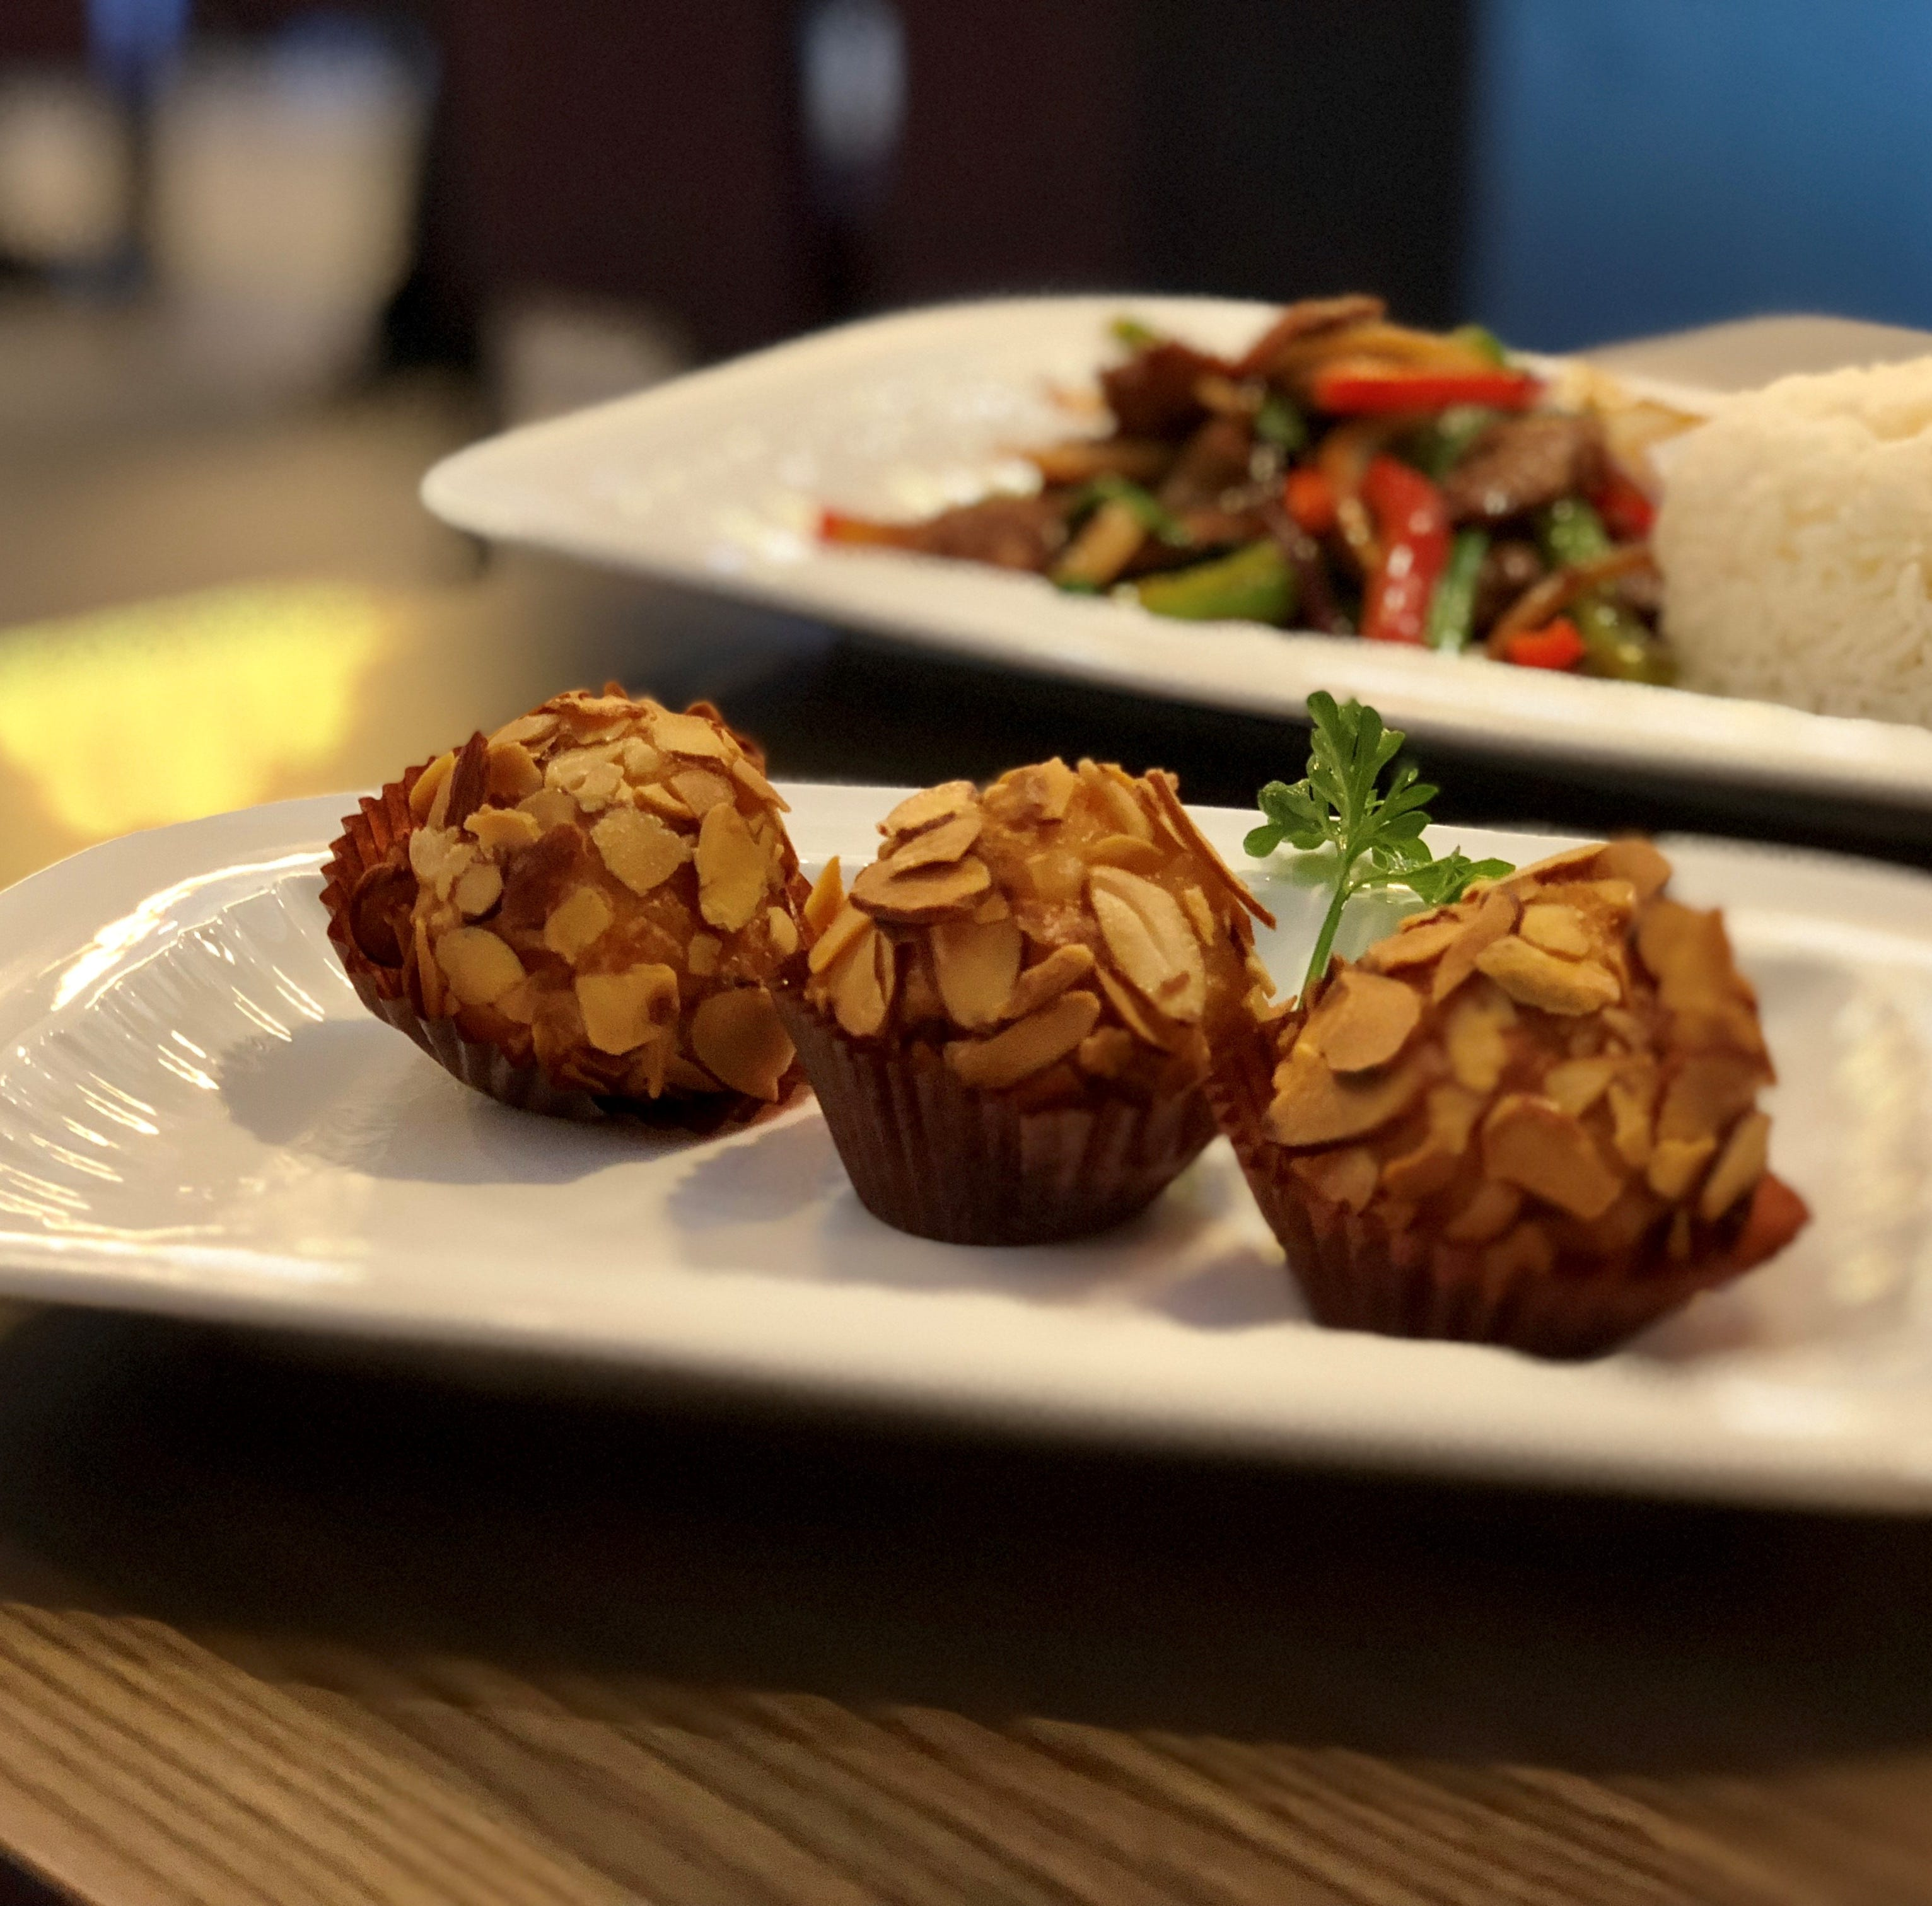 Cape Coral restaurants: Ginger Bistro brings dim sum to Shops at Surfside